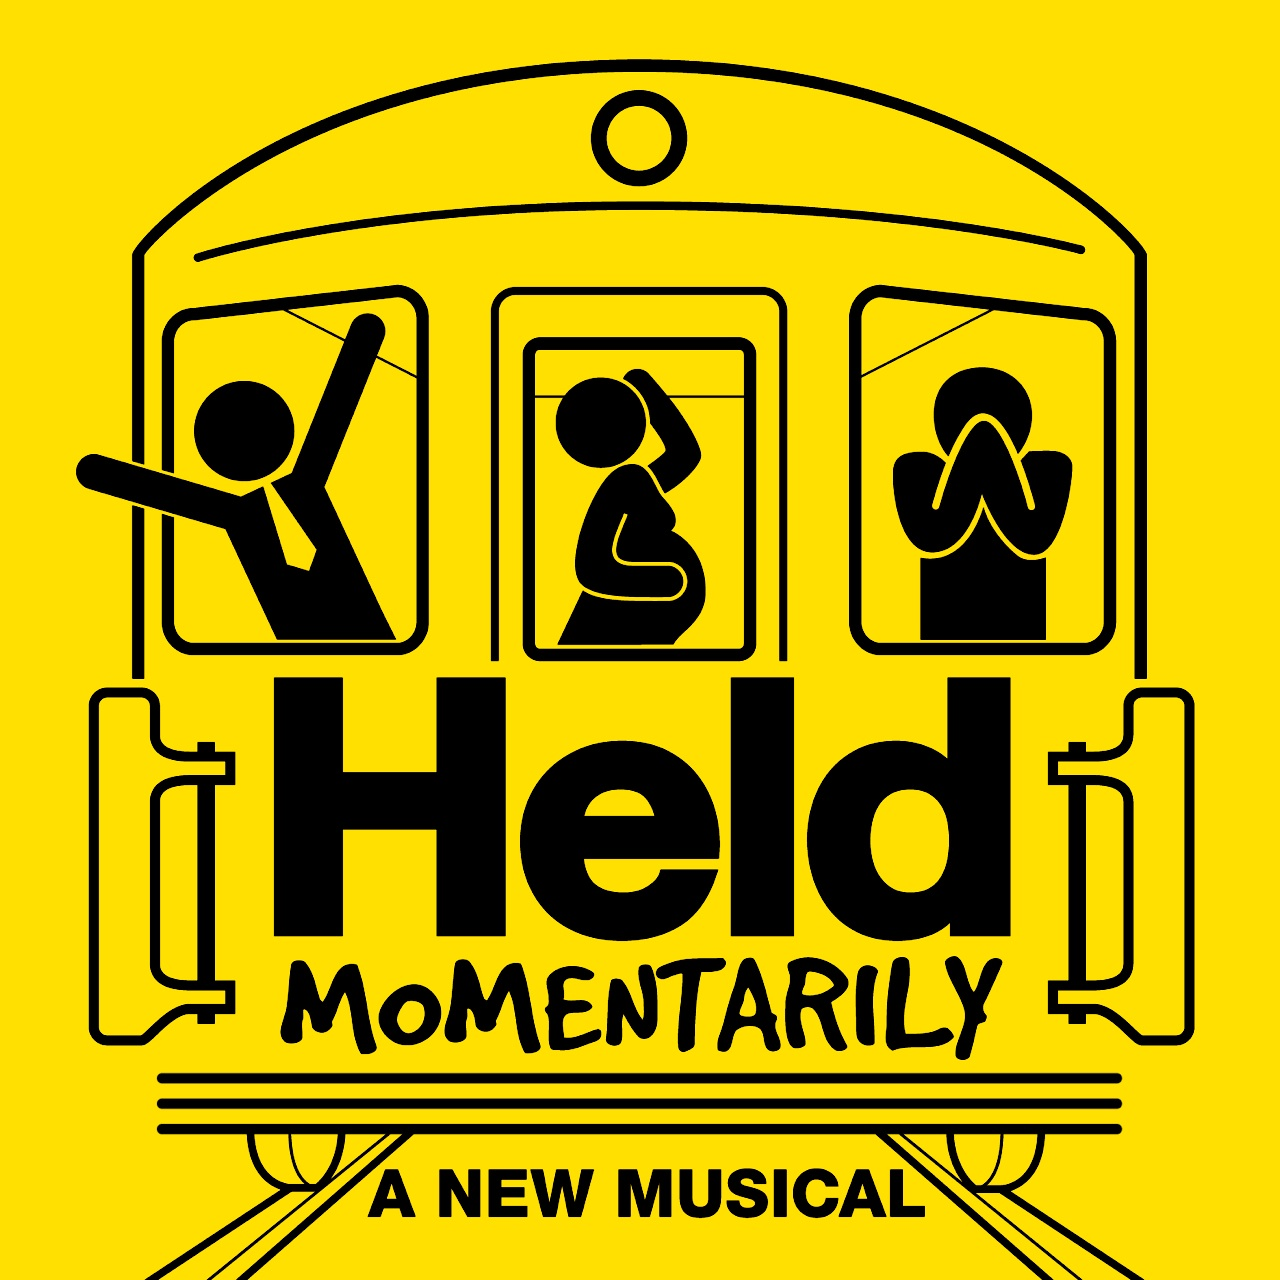 HELD MOMENTARILY - Trapped in the bowels of the New York City subway system, six strangers discover it's not just the train that's stuck. An outrageous musical ride about making connections, living in the moment, and moving on in life. Oh, and one more thing: a woman just went into labor.